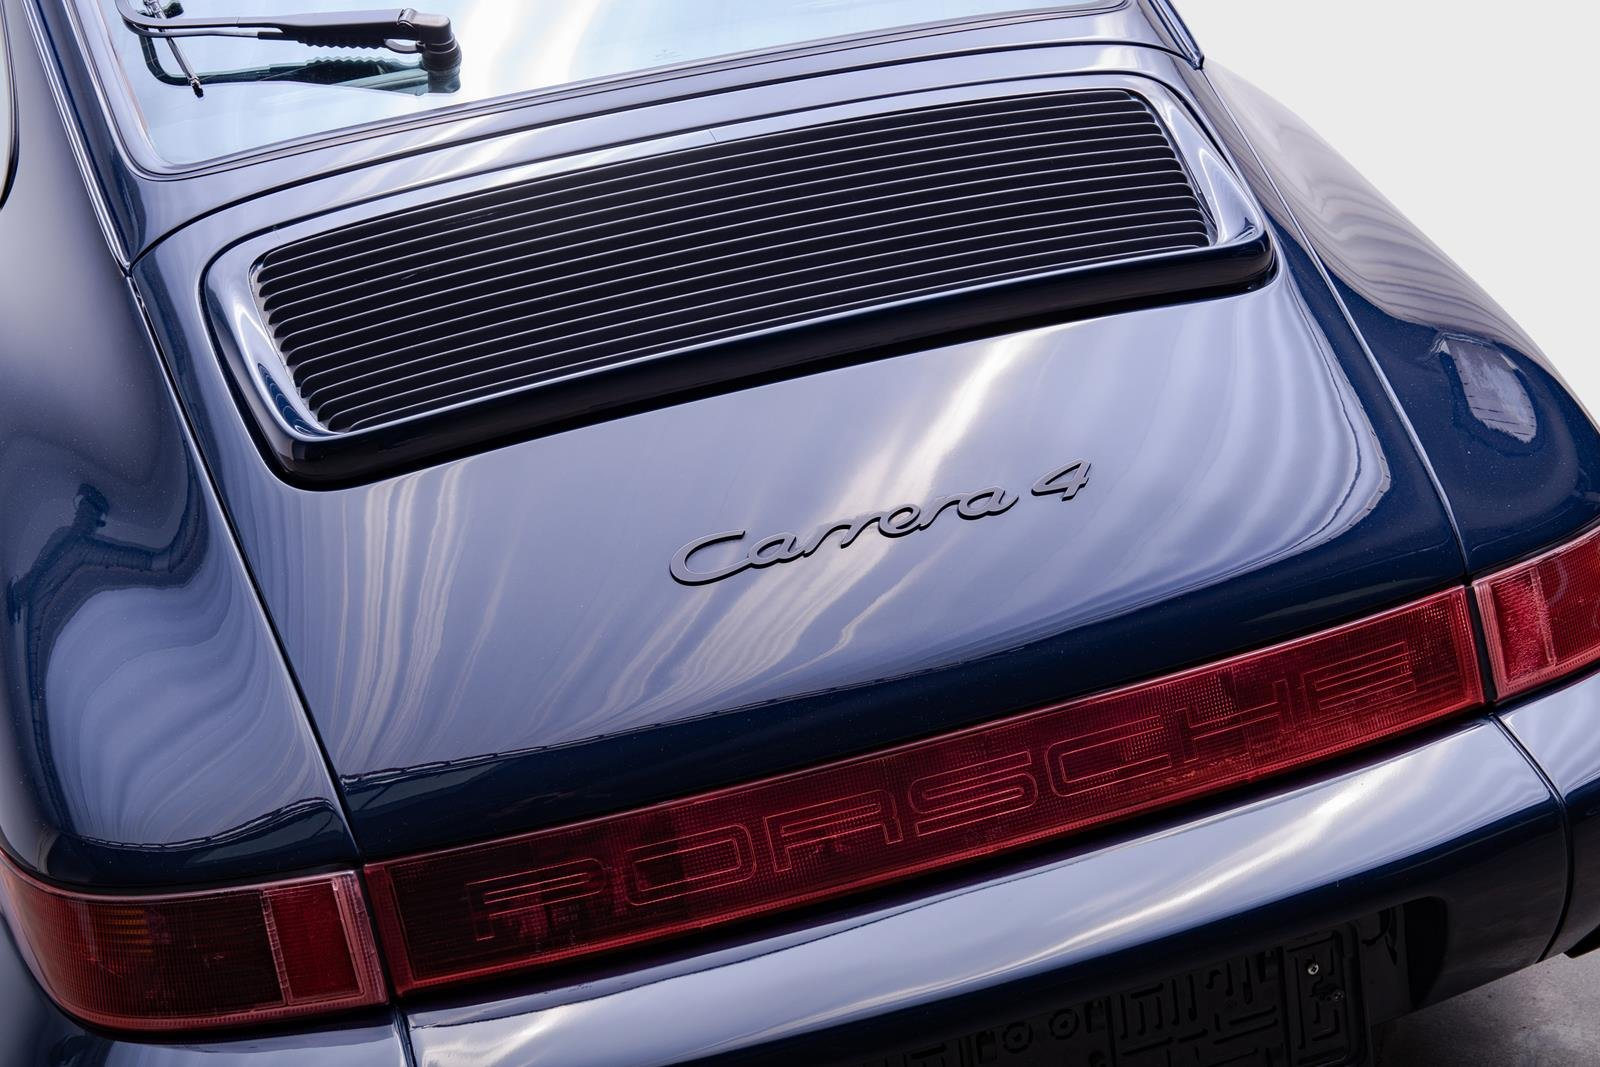 Porsche Carrera 4 3,6L 1989 For Sale (picture 3 of 6)